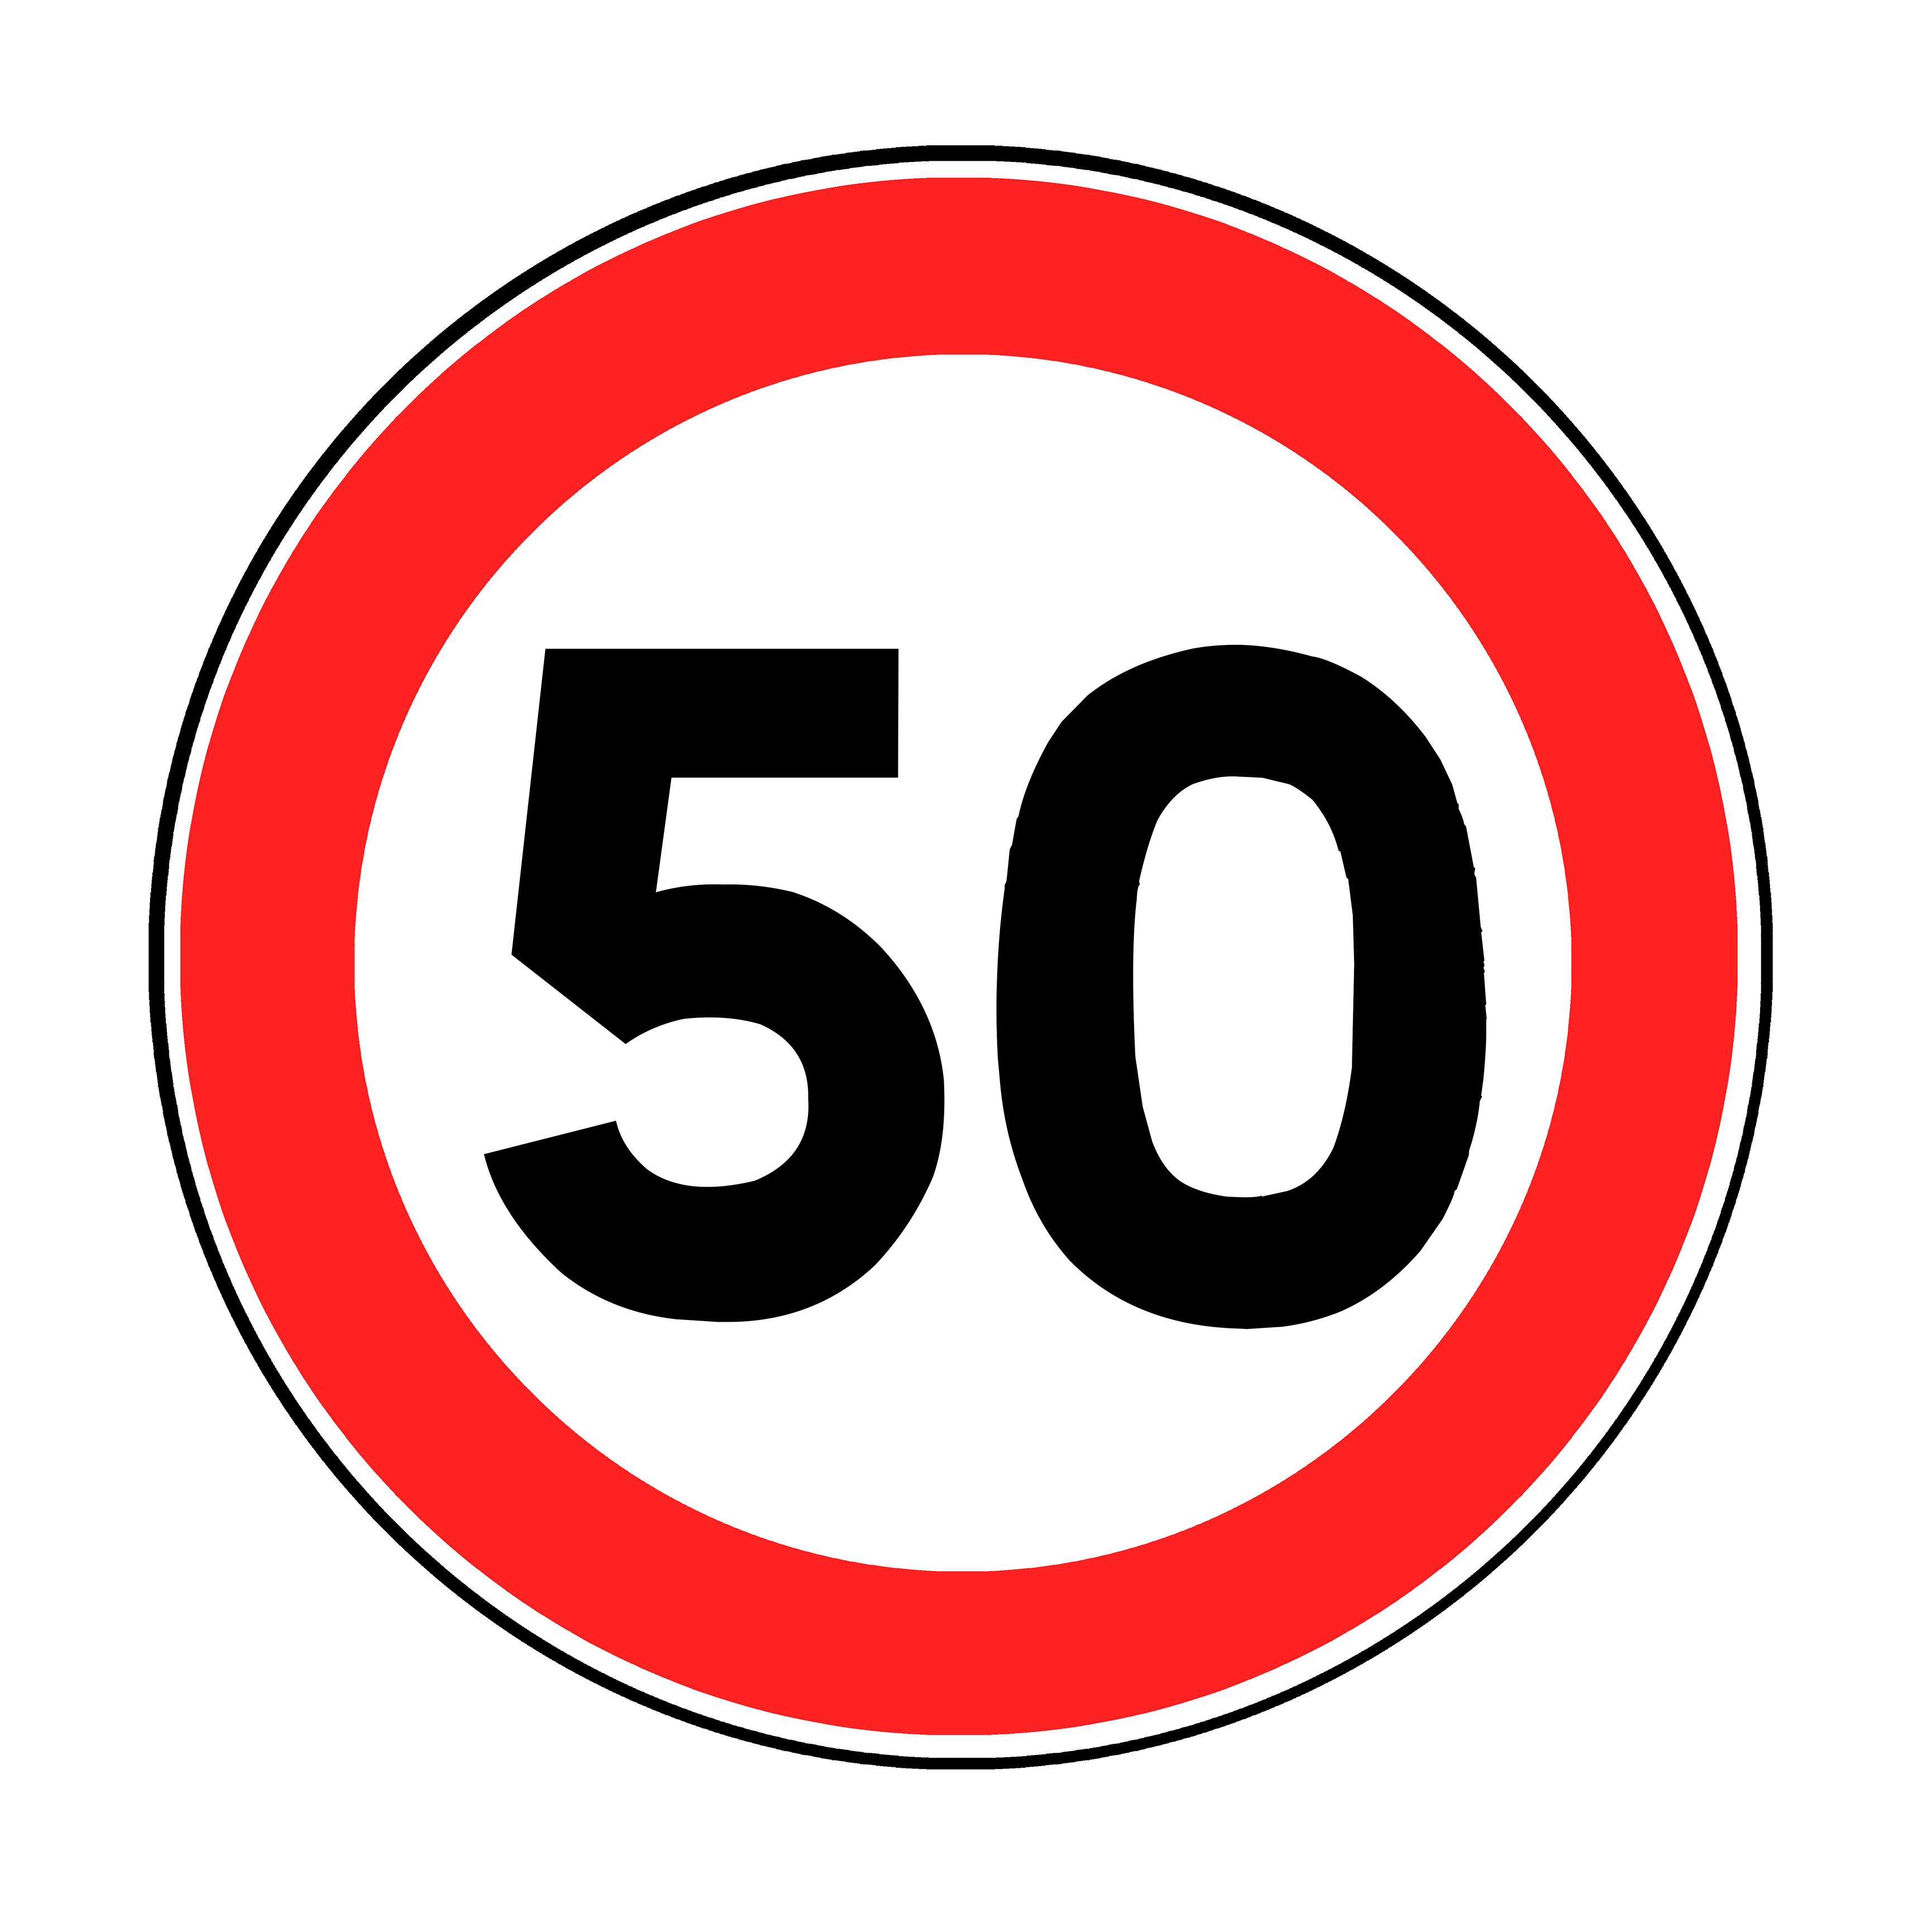 File:France Speed Limit 50.png.